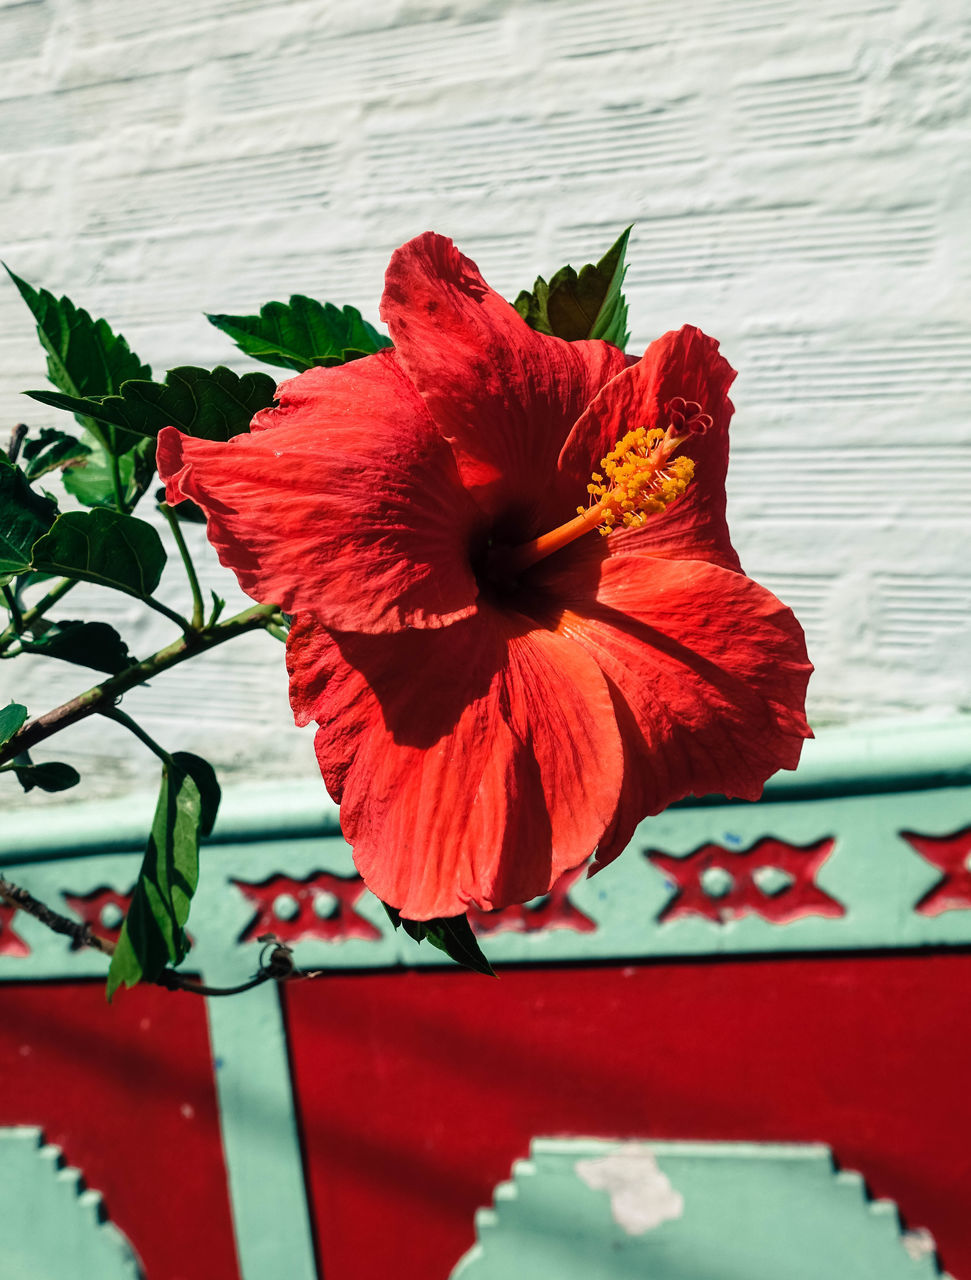 flower, red, petal, flower head, fragility, beauty in nature, no people, freshness, nature, plant, close-up, hibiscus, day, growth, leaf, outdoors, blooming